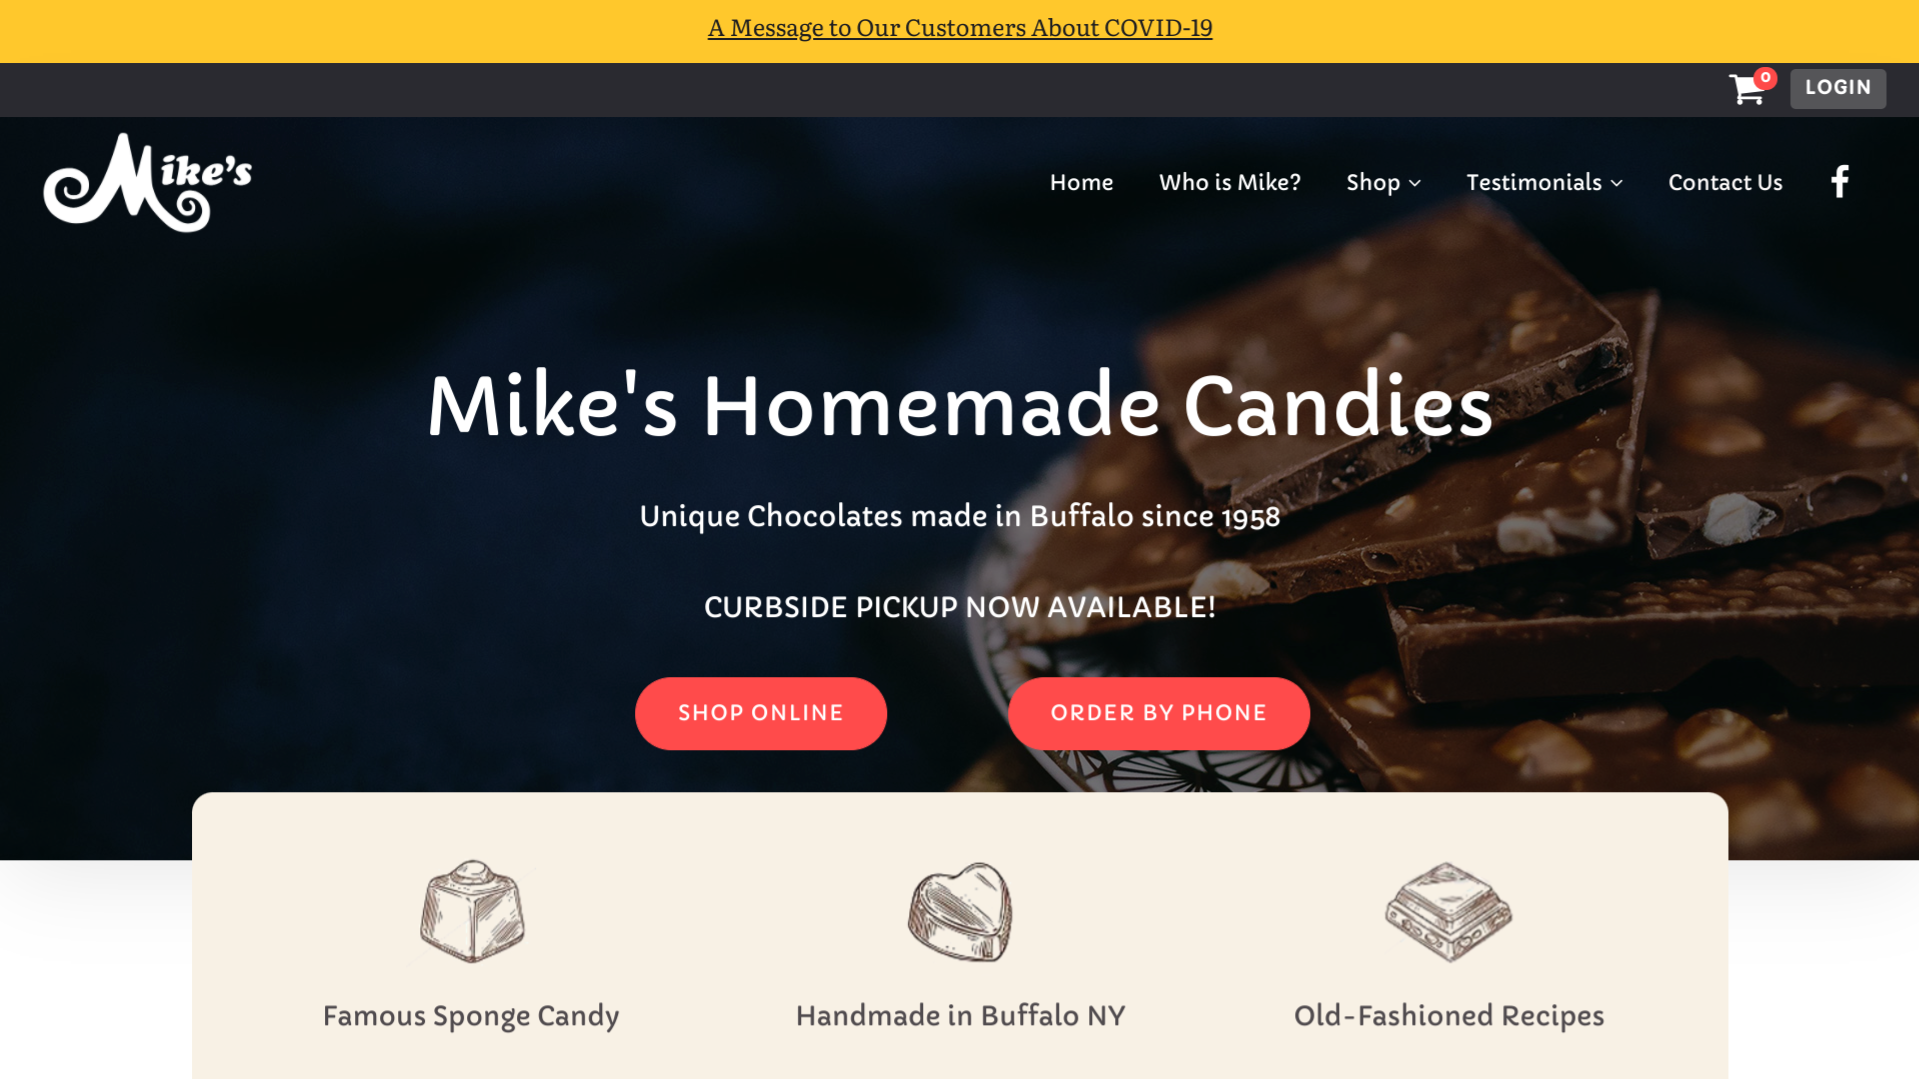 Mike's Homemade Candies